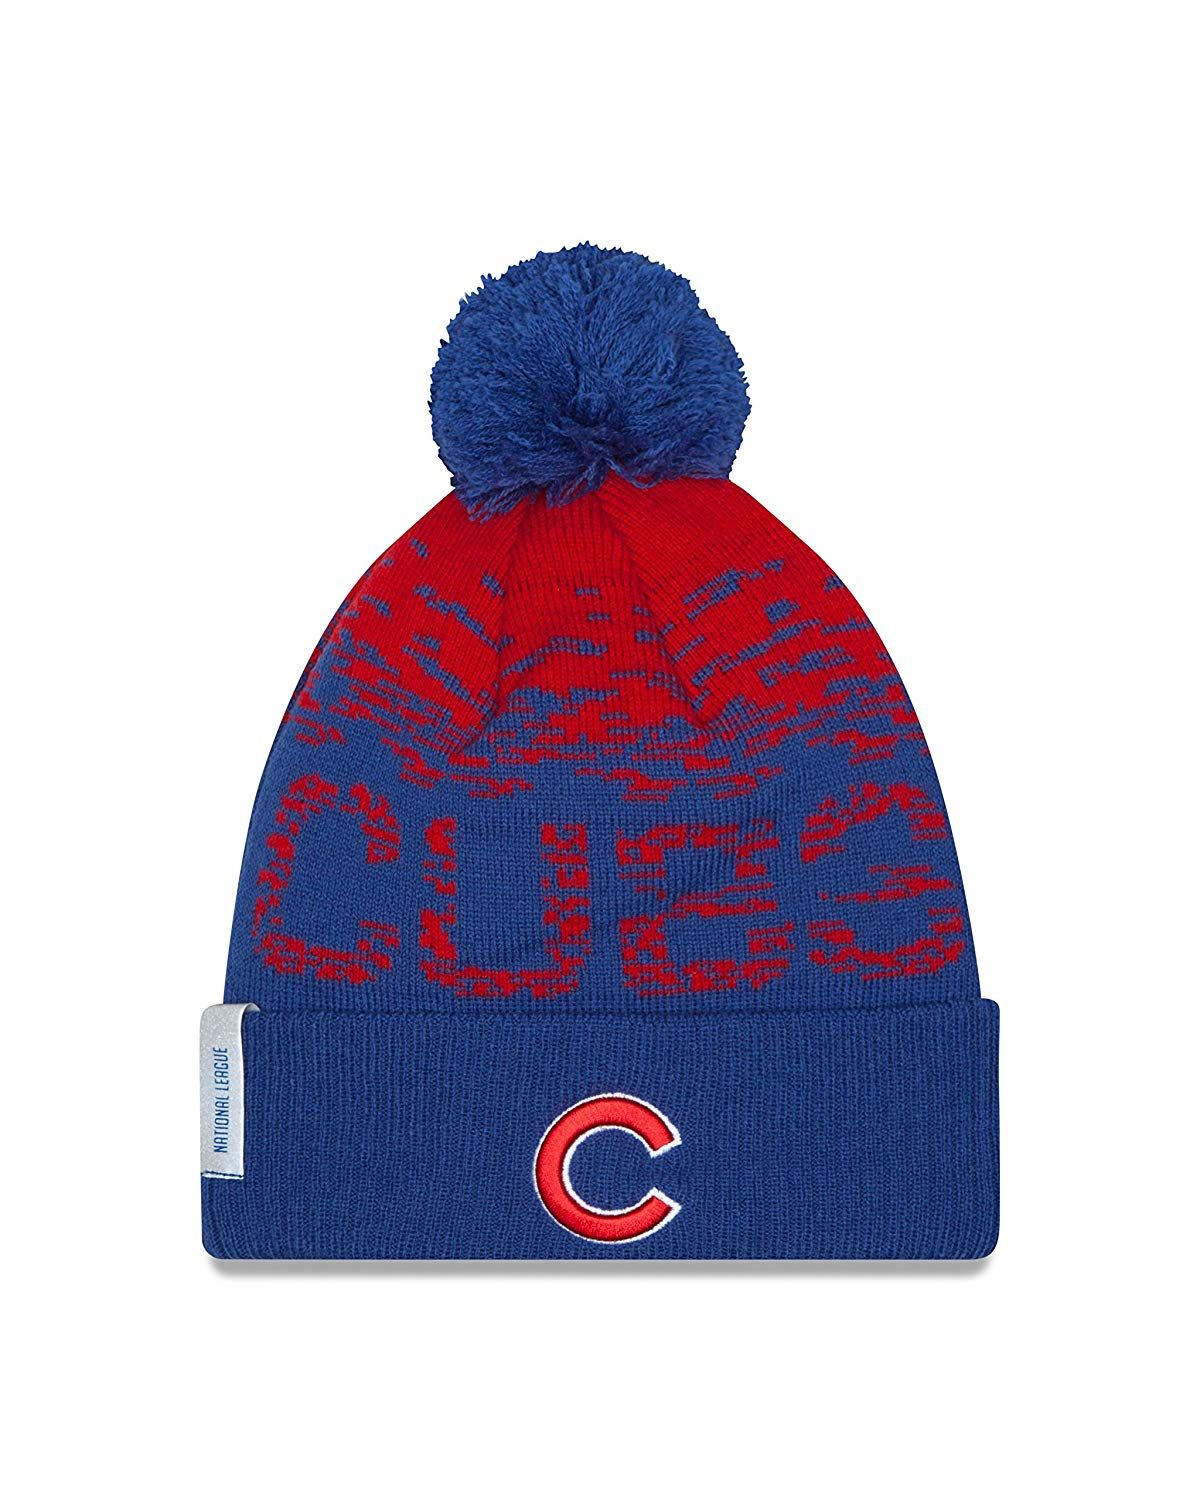 ab273067afa9b8 ... closeout new era mlb unisex mlb on field sport knit beanie 39.99 c5433  828c6